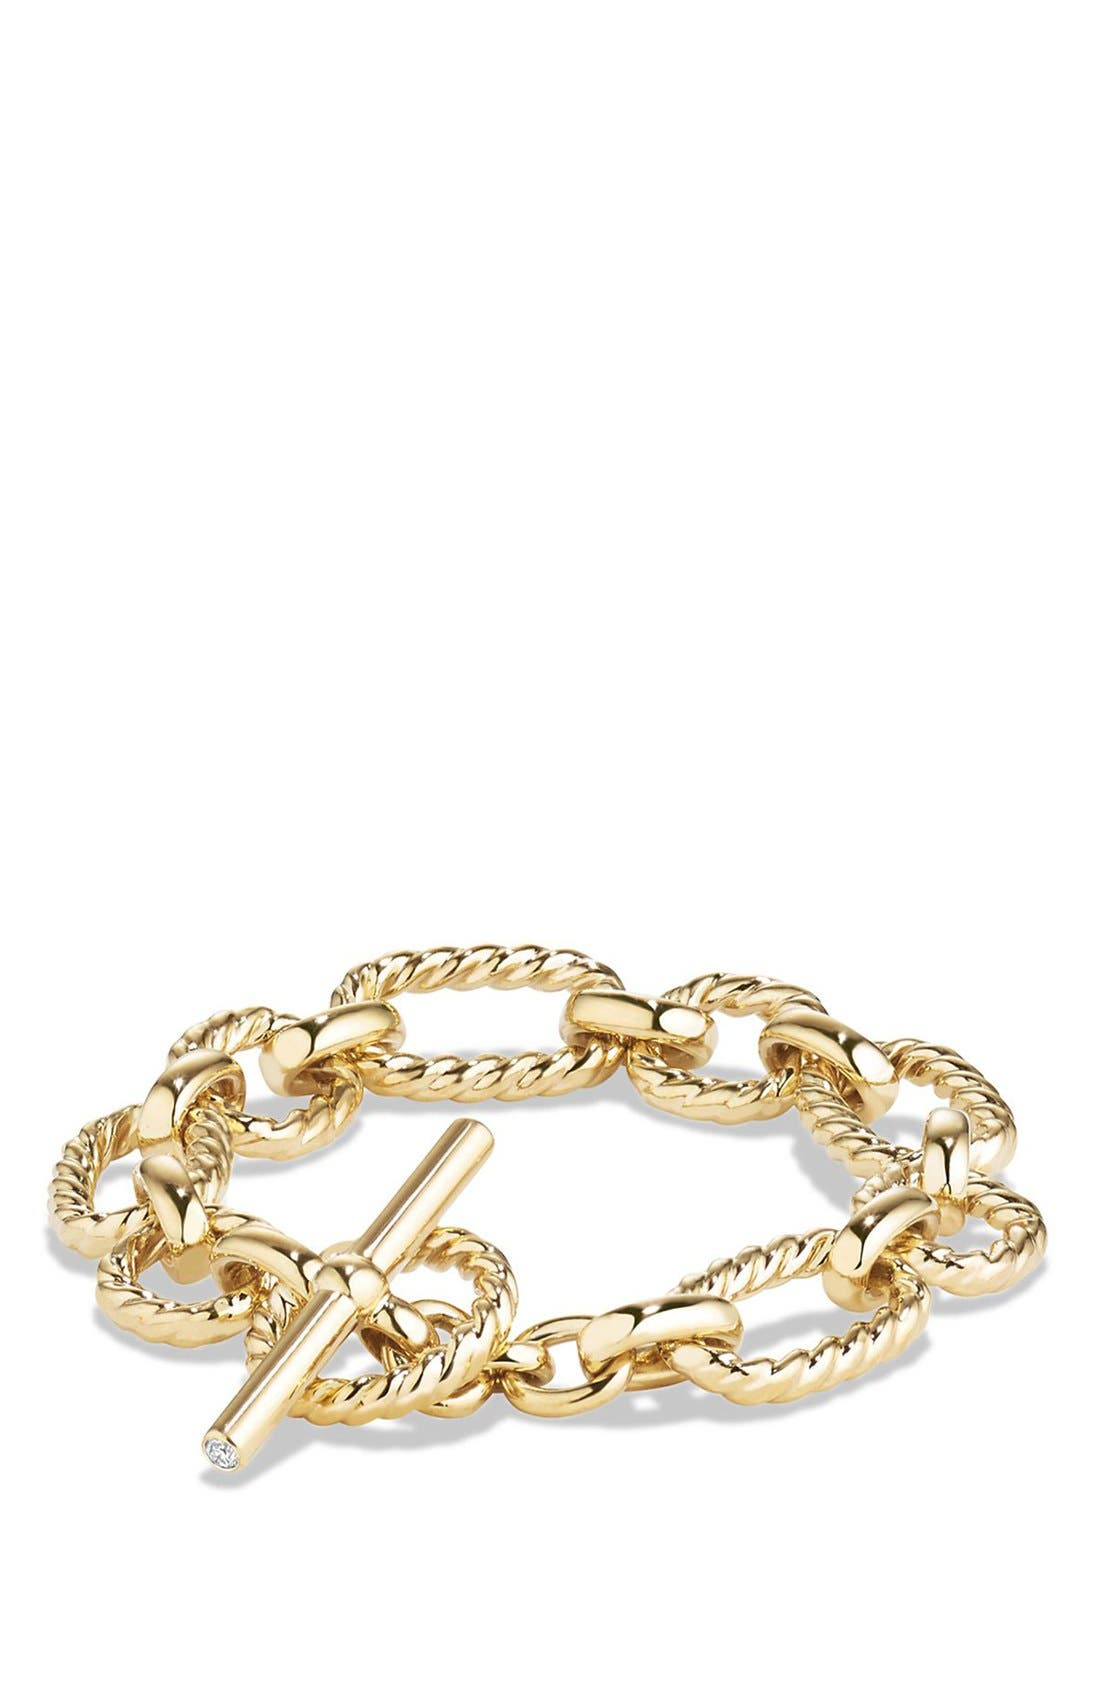 'Chain' Cushion Link Bracelet with Diamonds in 18K Gold,                         Main,                         color, Gold